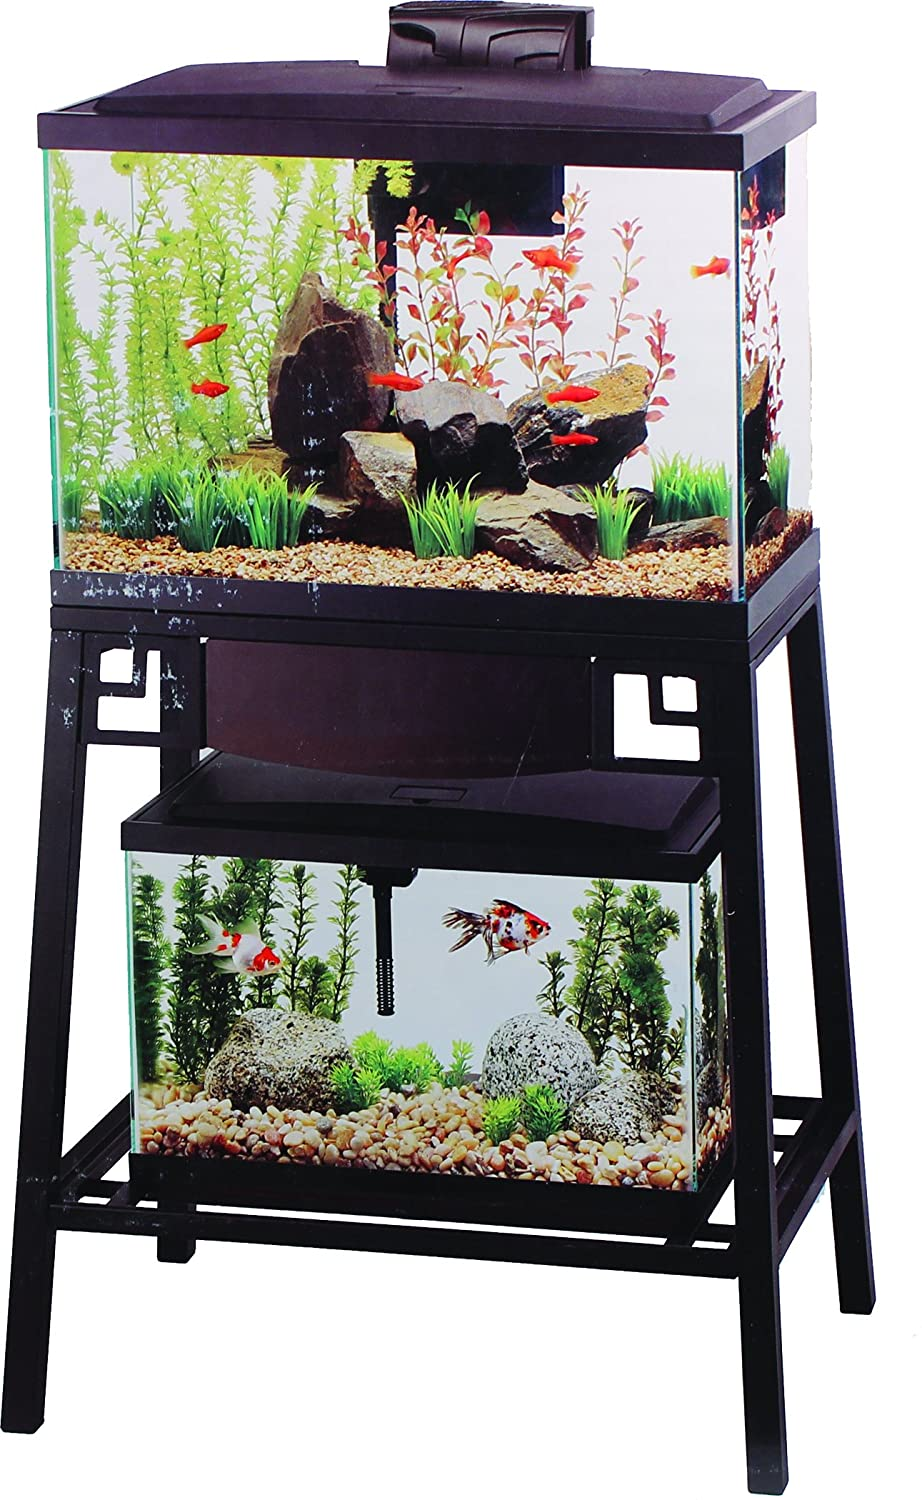 Aqueon Forge Metal Aquarium Stand 24 by 12-inch Black